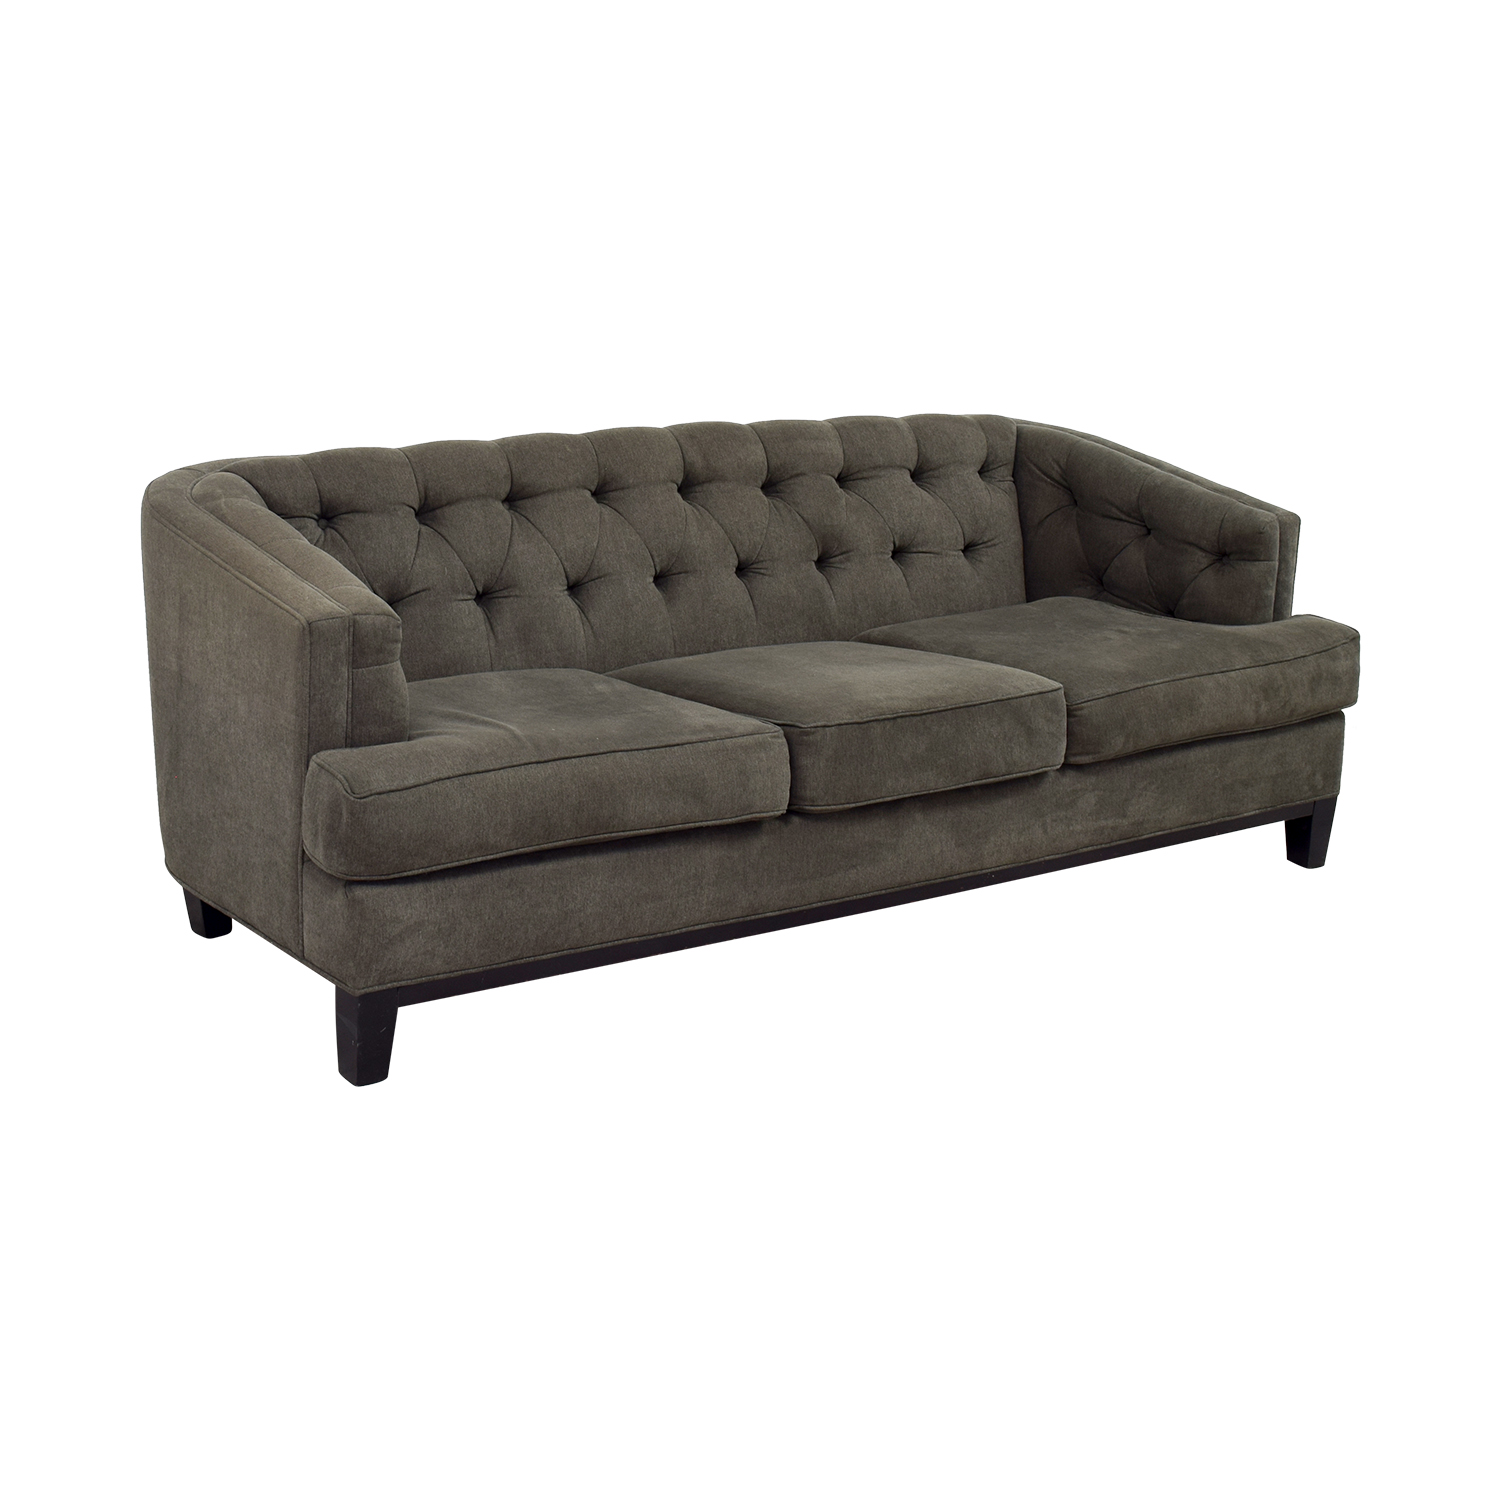 buy Rooms To Go Rooms To Go Tufted Sofa online